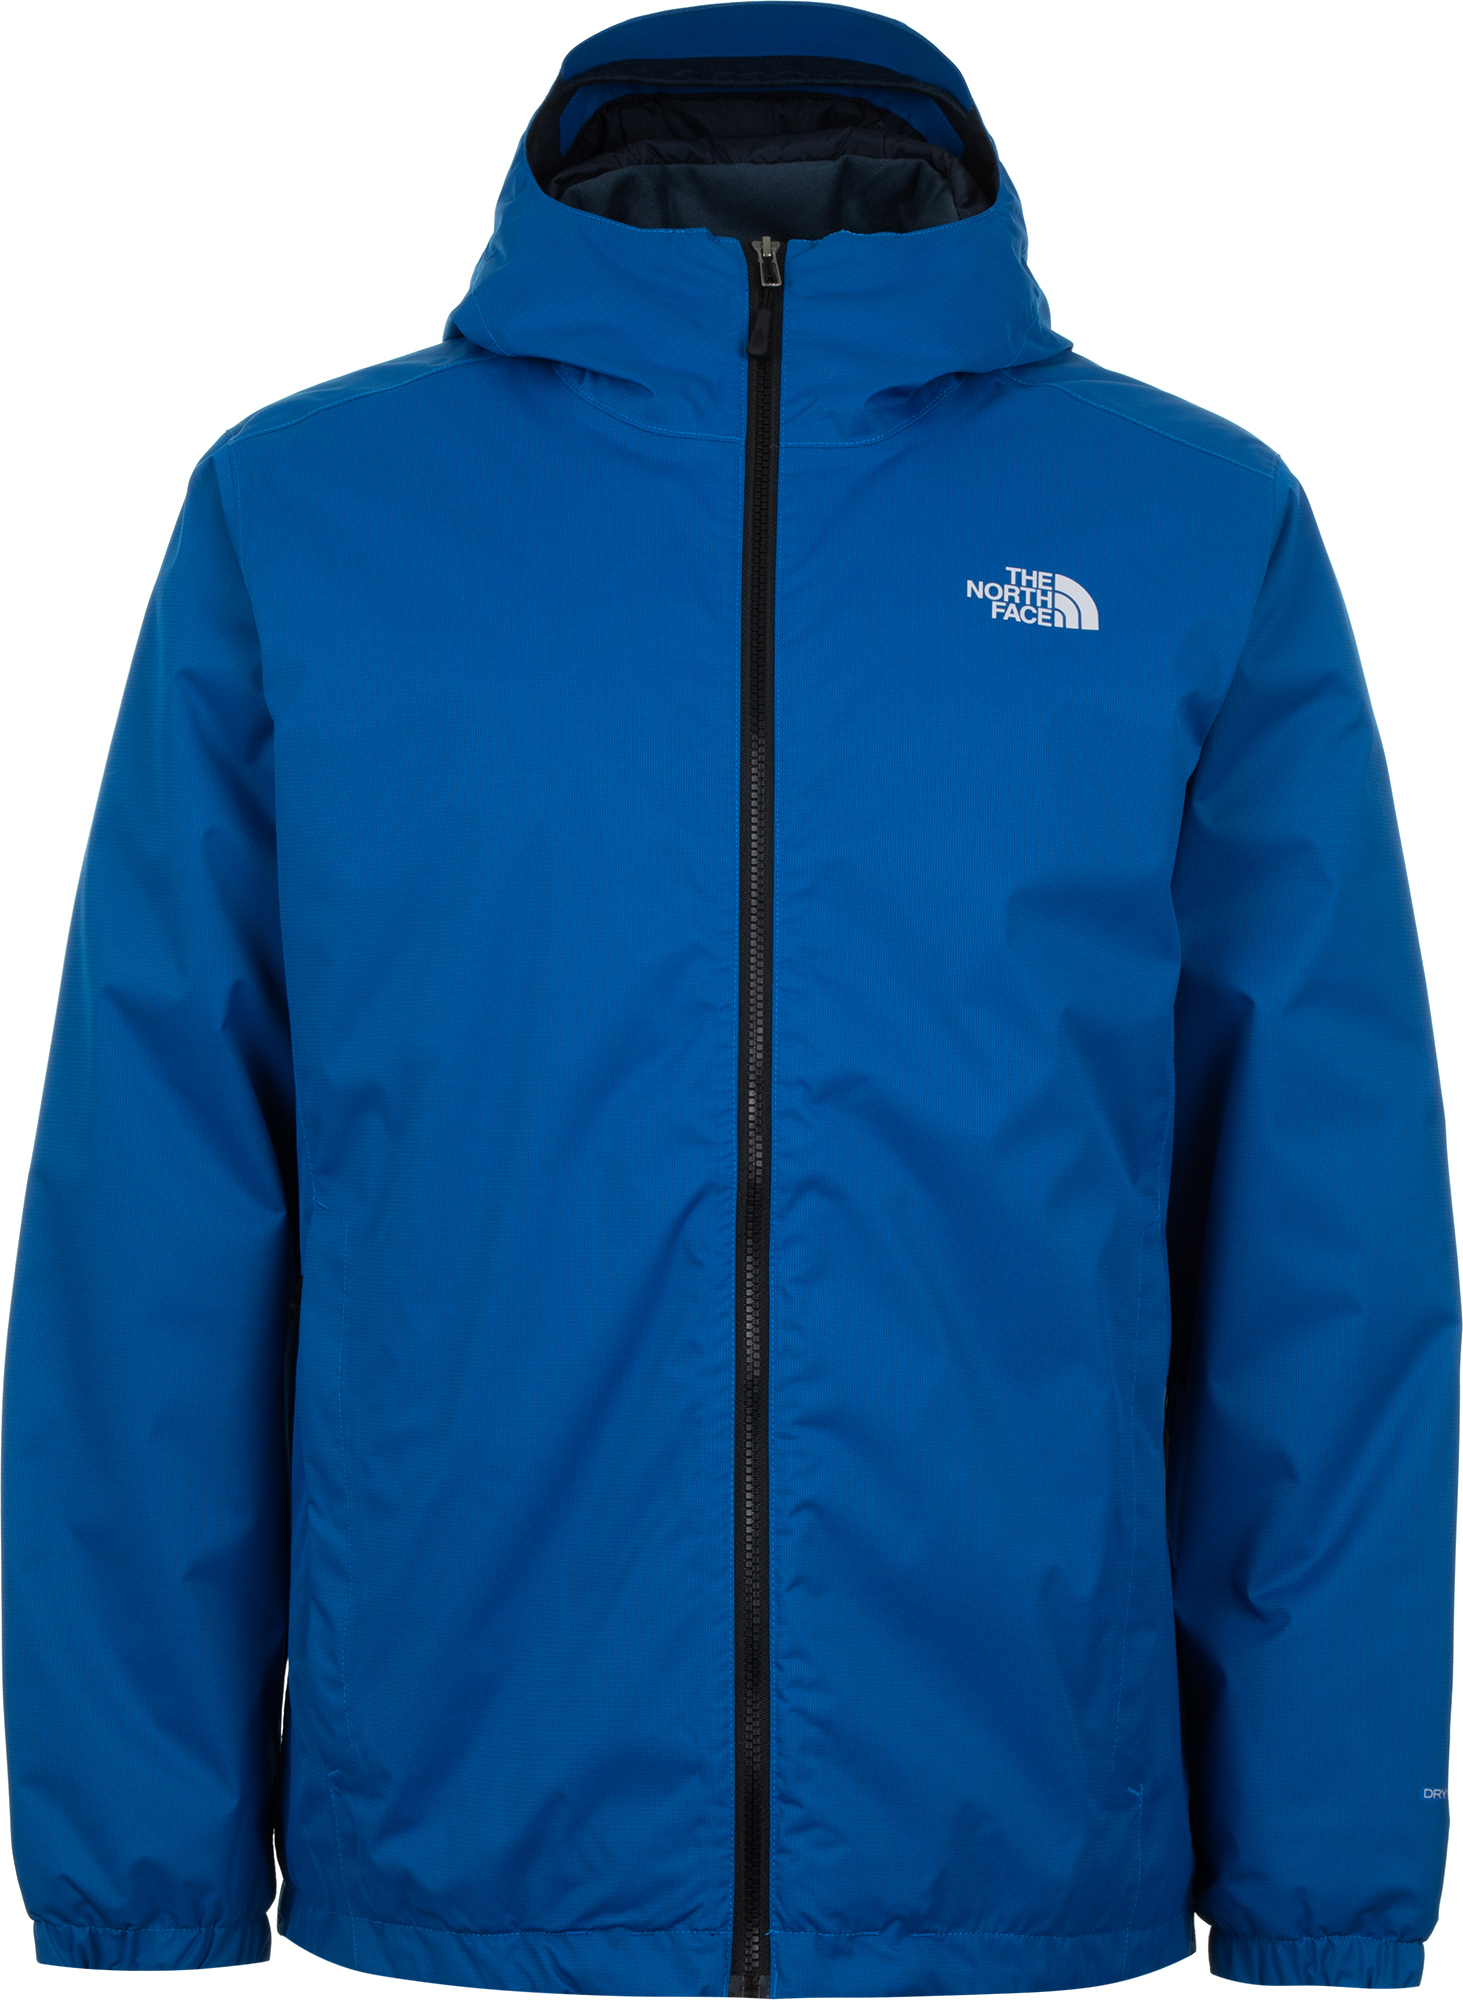 The North Face Куртка утепленная мужская The North Face Quest Insulated, размер 50 the north face ветровка мужская the north face quest размер 52